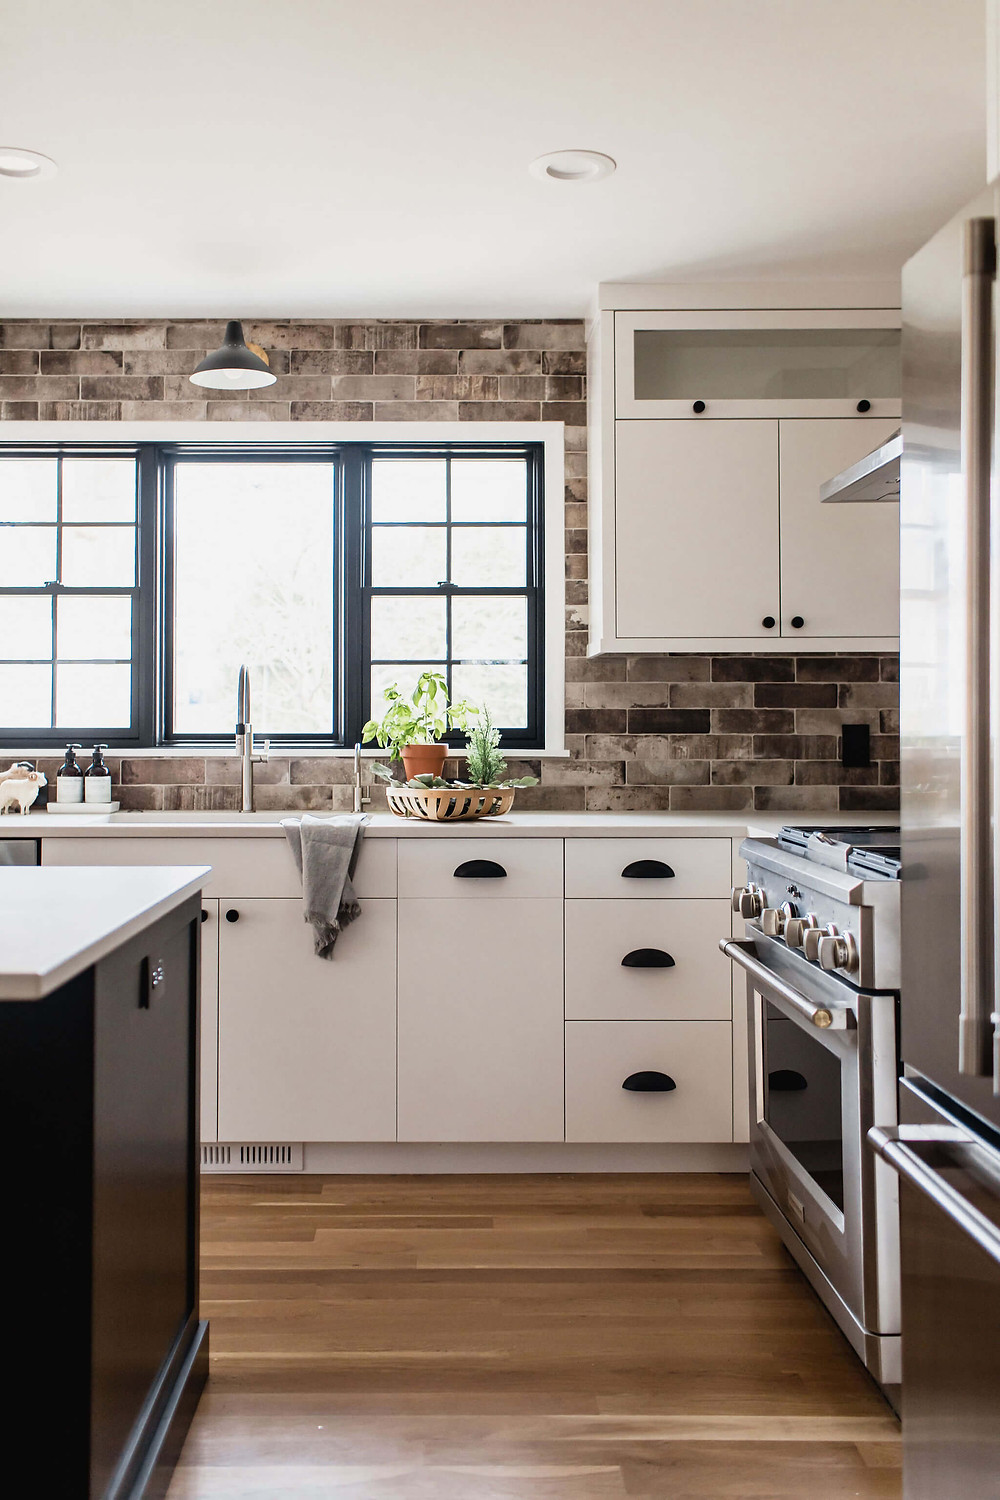 Industrial city inspired kitchen with porcelain brick backsplash to the ceiling and modern flat front cabinets with a large black window